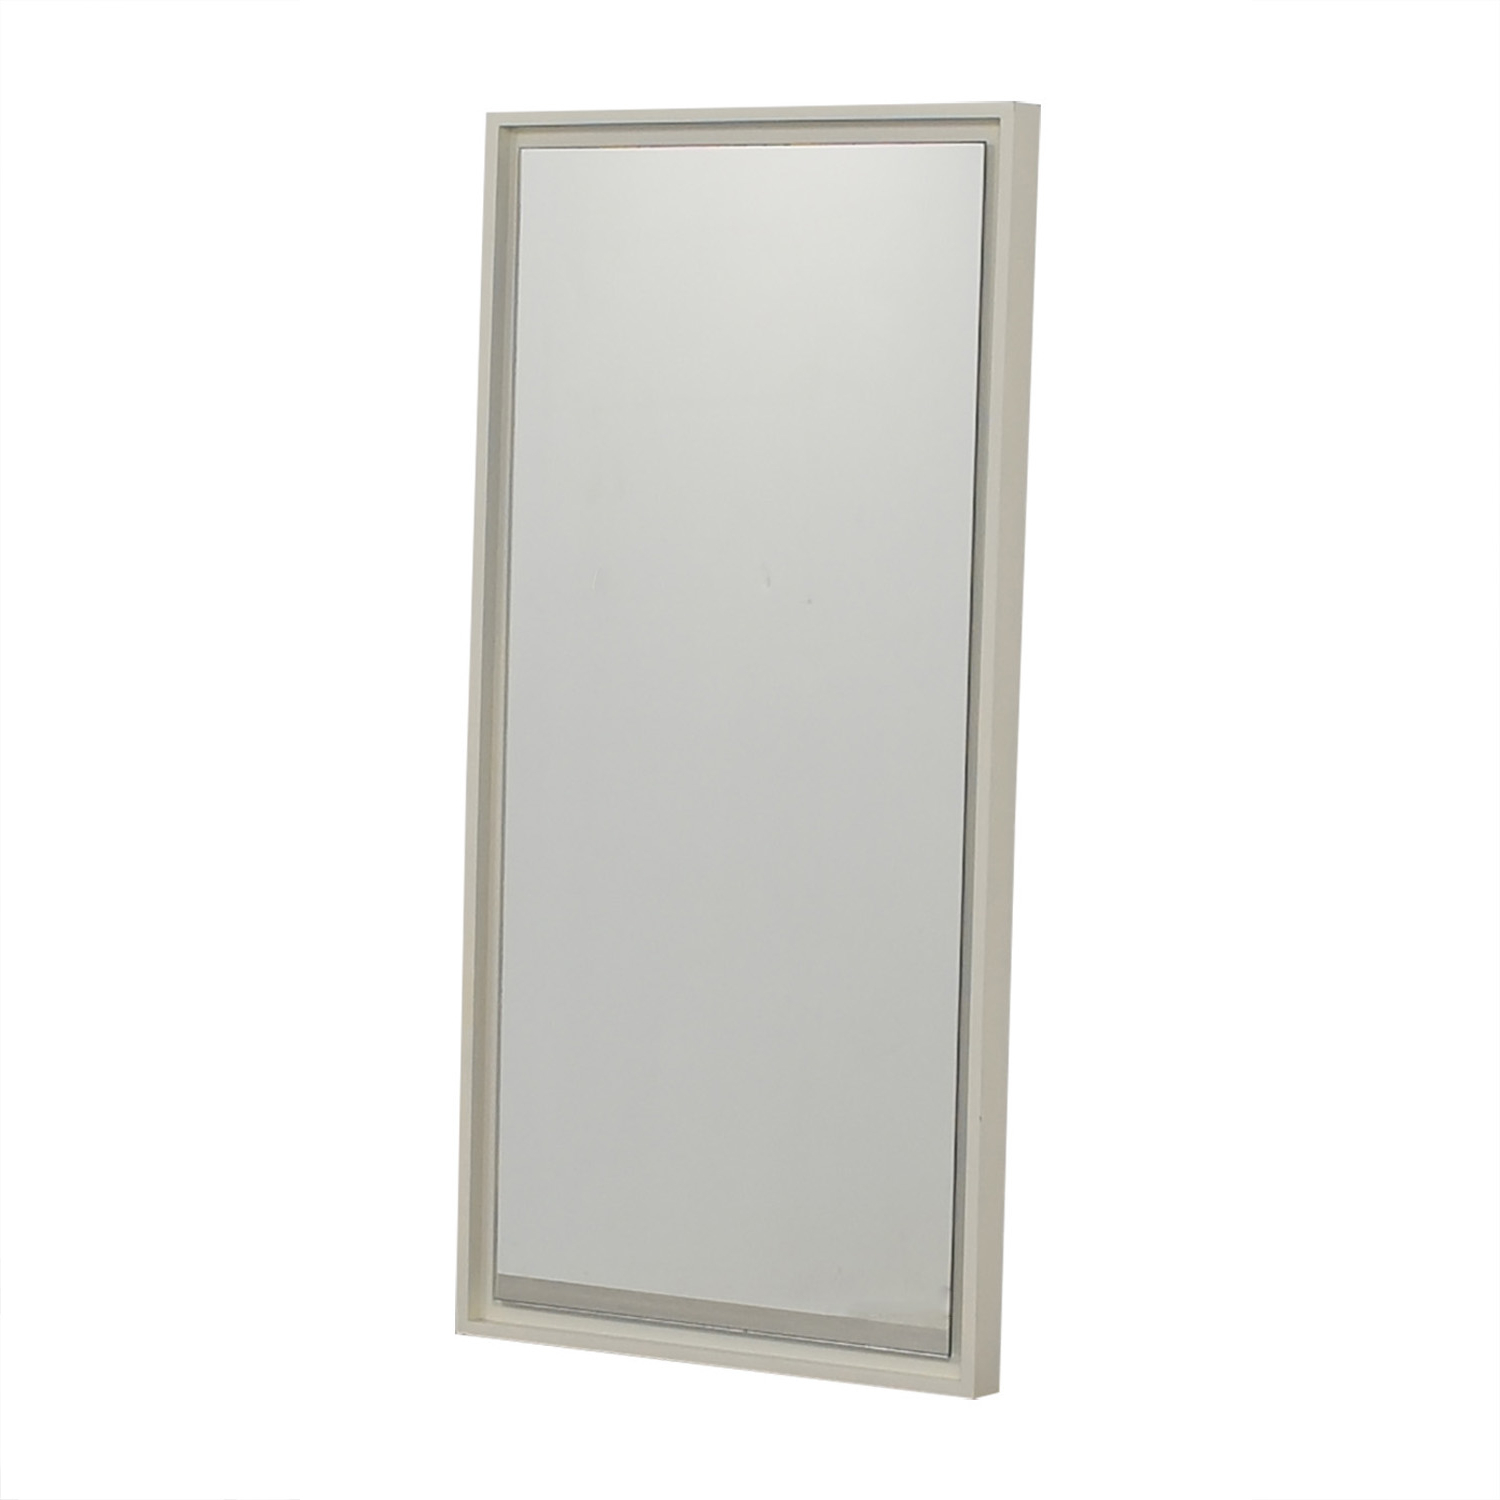 [%47% Off – West Elm West Elm White Lacquer Floating Wood Wall Mirror / Decor Regarding 2019 West Elm Wall Mirrors|west Elm Wall Mirrors With Best And Newest 47% Off – West Elm West Elm White Lacquer Floating Wood Wall Mirror / Decor|latest West Elm Wall Mirrors With 47% Off – West Elm West Elm White Lacquer Floating Wood Wall Mirror / Decor|trendy 47% Off – West Elm West Elm White Lacquer Floating Wood Wall Mirror / Decor For West Elm Wall Mirrors%] (View 12 of 20)